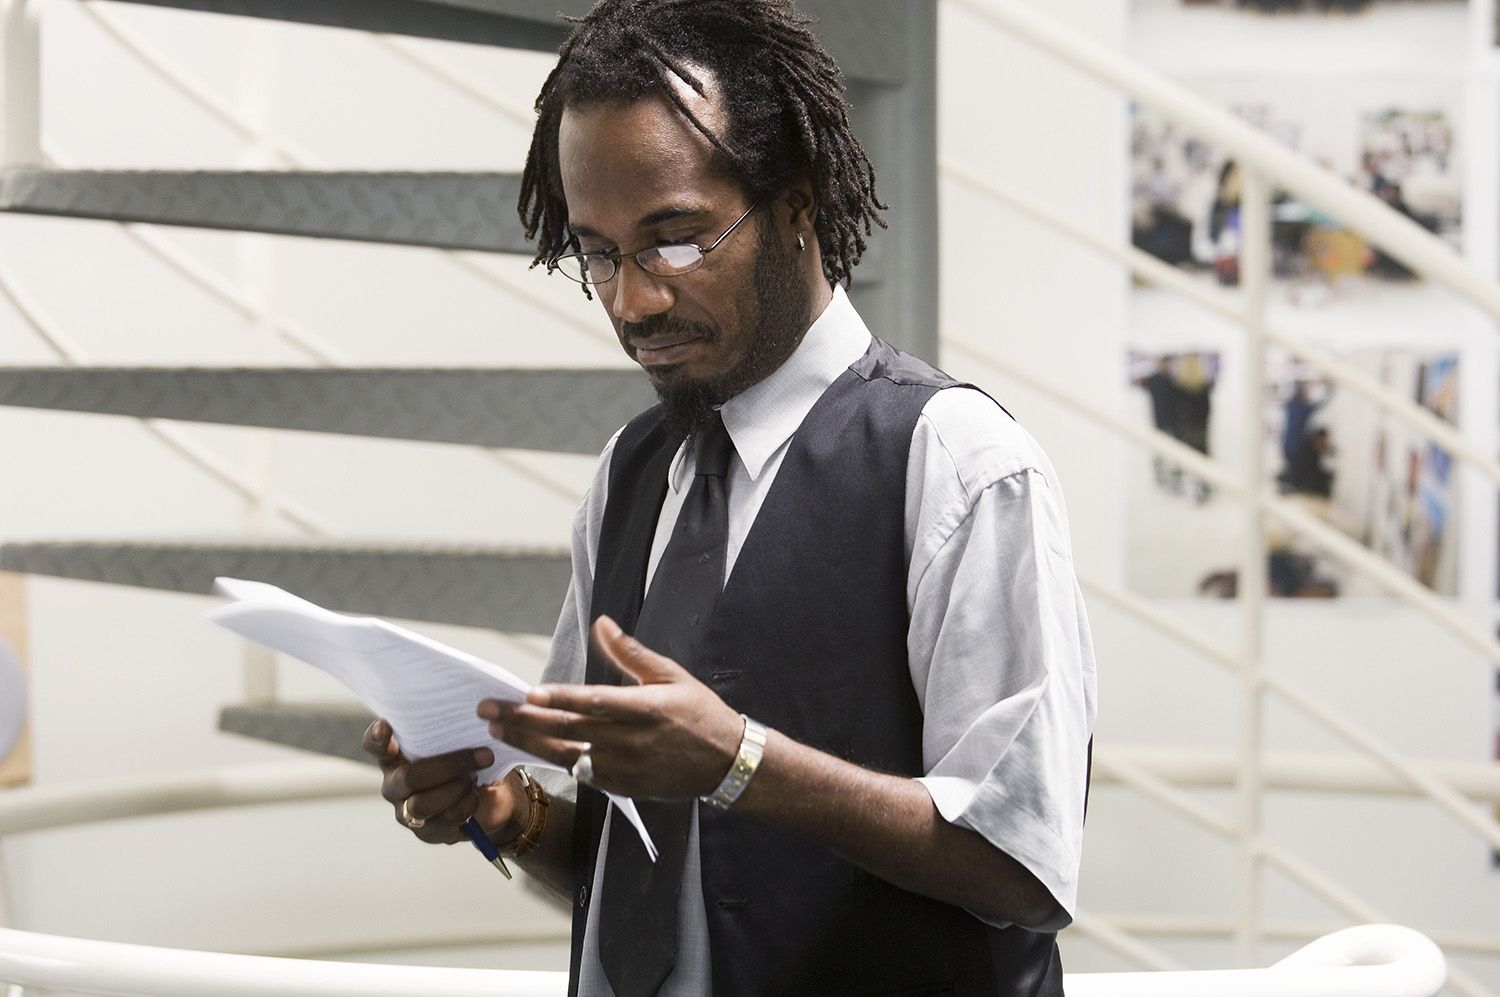 Man Wearing Spectacles, Reading Letter